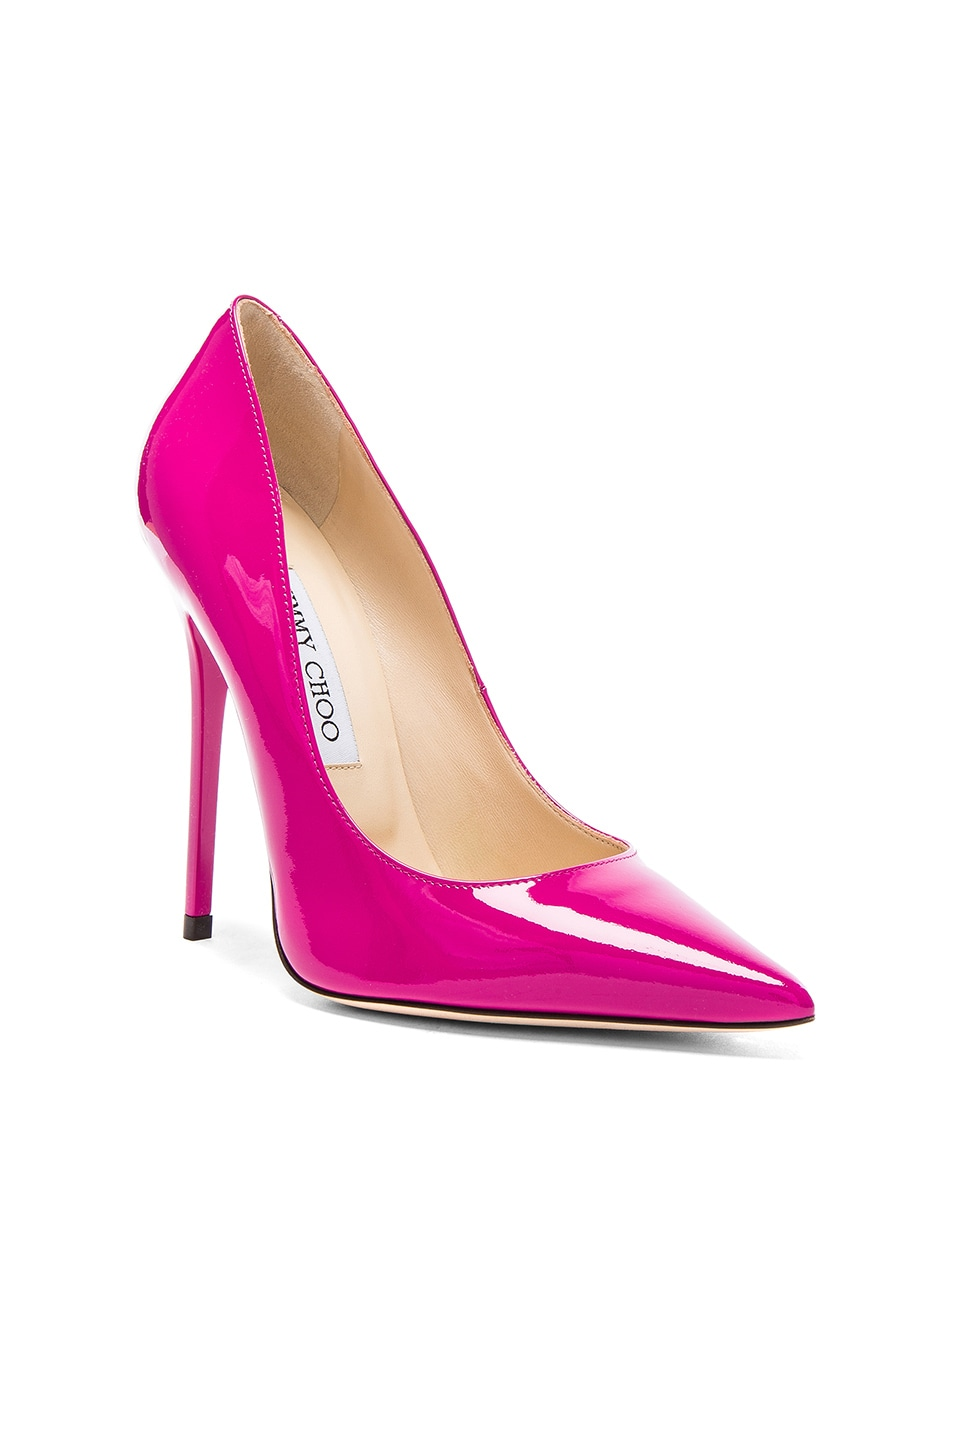 Image 2 of Jimmy Choo Patent Leather Anouk Heels in Jazzberry